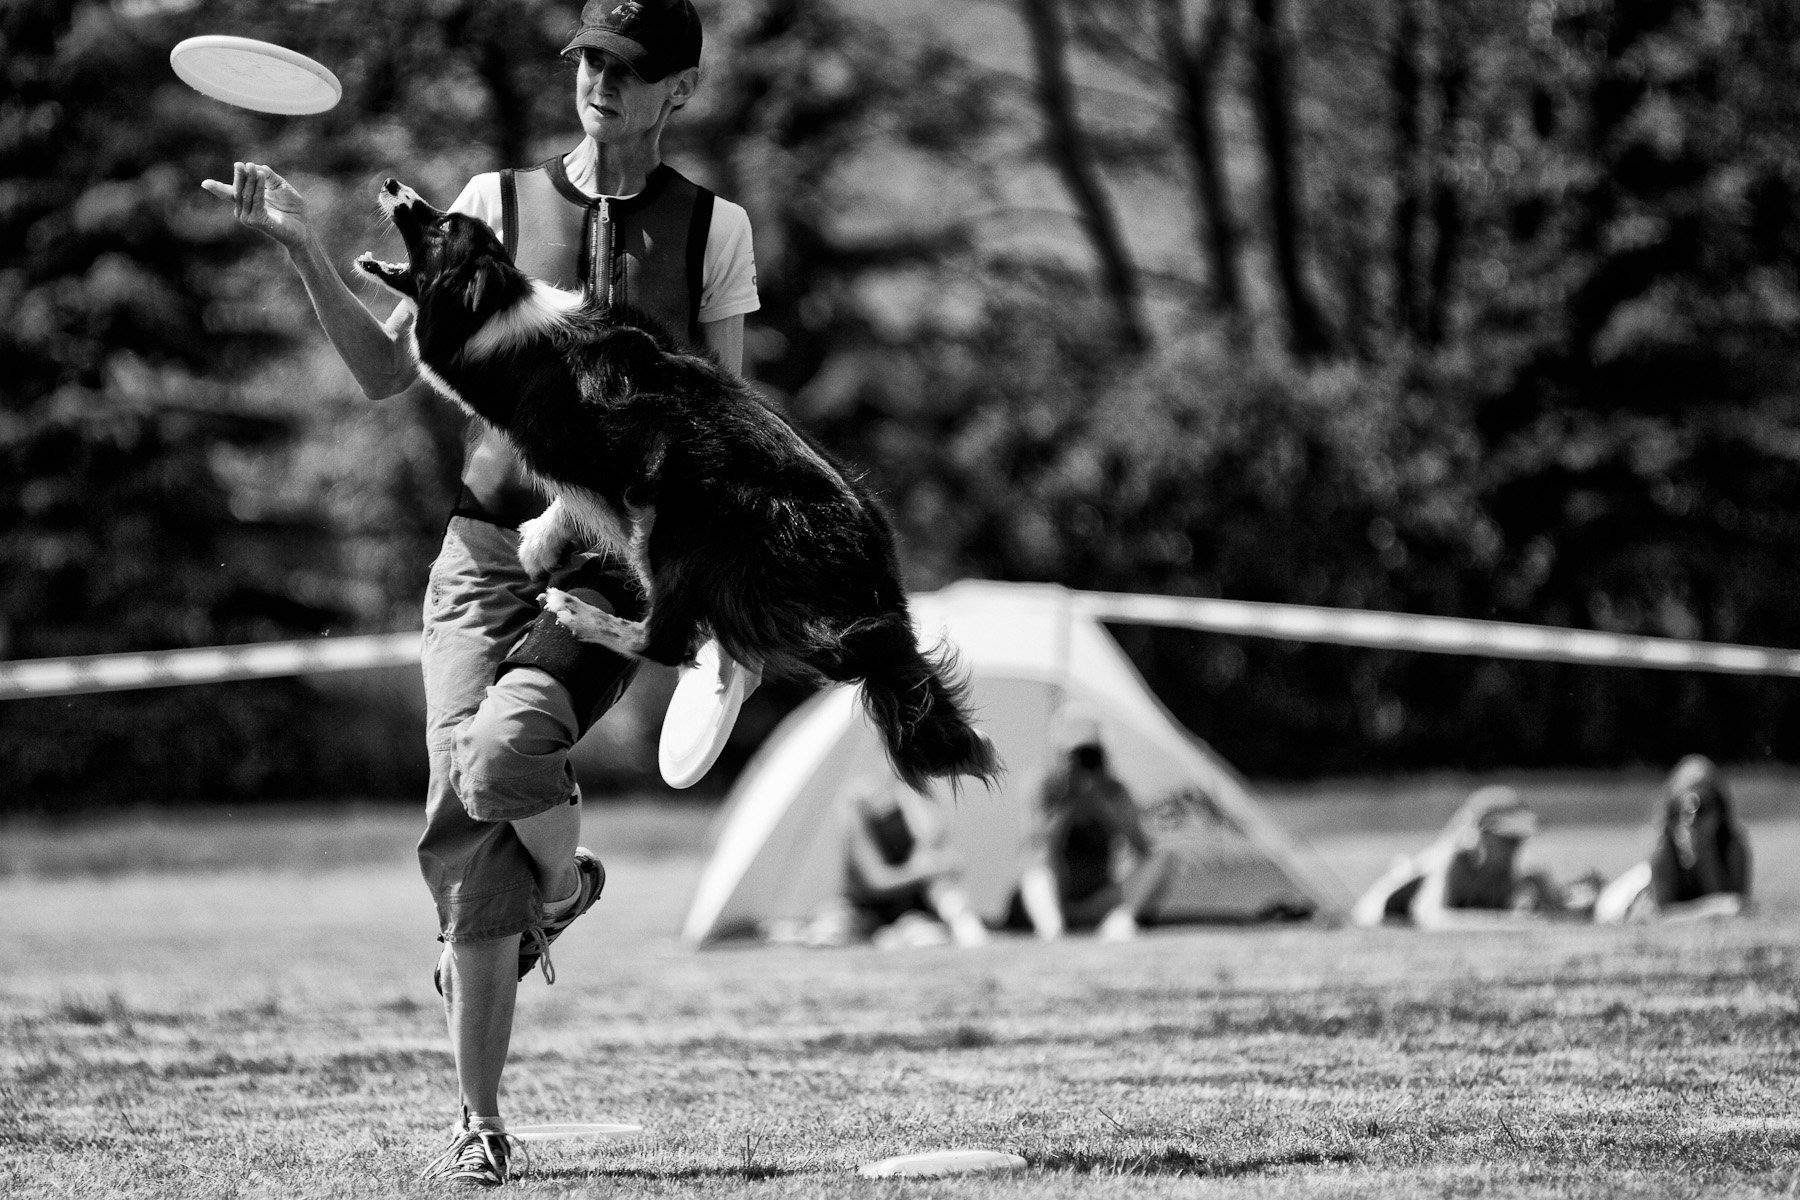 Lyra performs a leg vault during freestyle program of the Fun Factory for Frisbee competition in Blsany, Czech Republic, June 4, 2011. Vaults are the most creative tricks in freestyle, because handlers discover new ways of execution. Dogs now push off from everywhere: legs, back, chest etc.